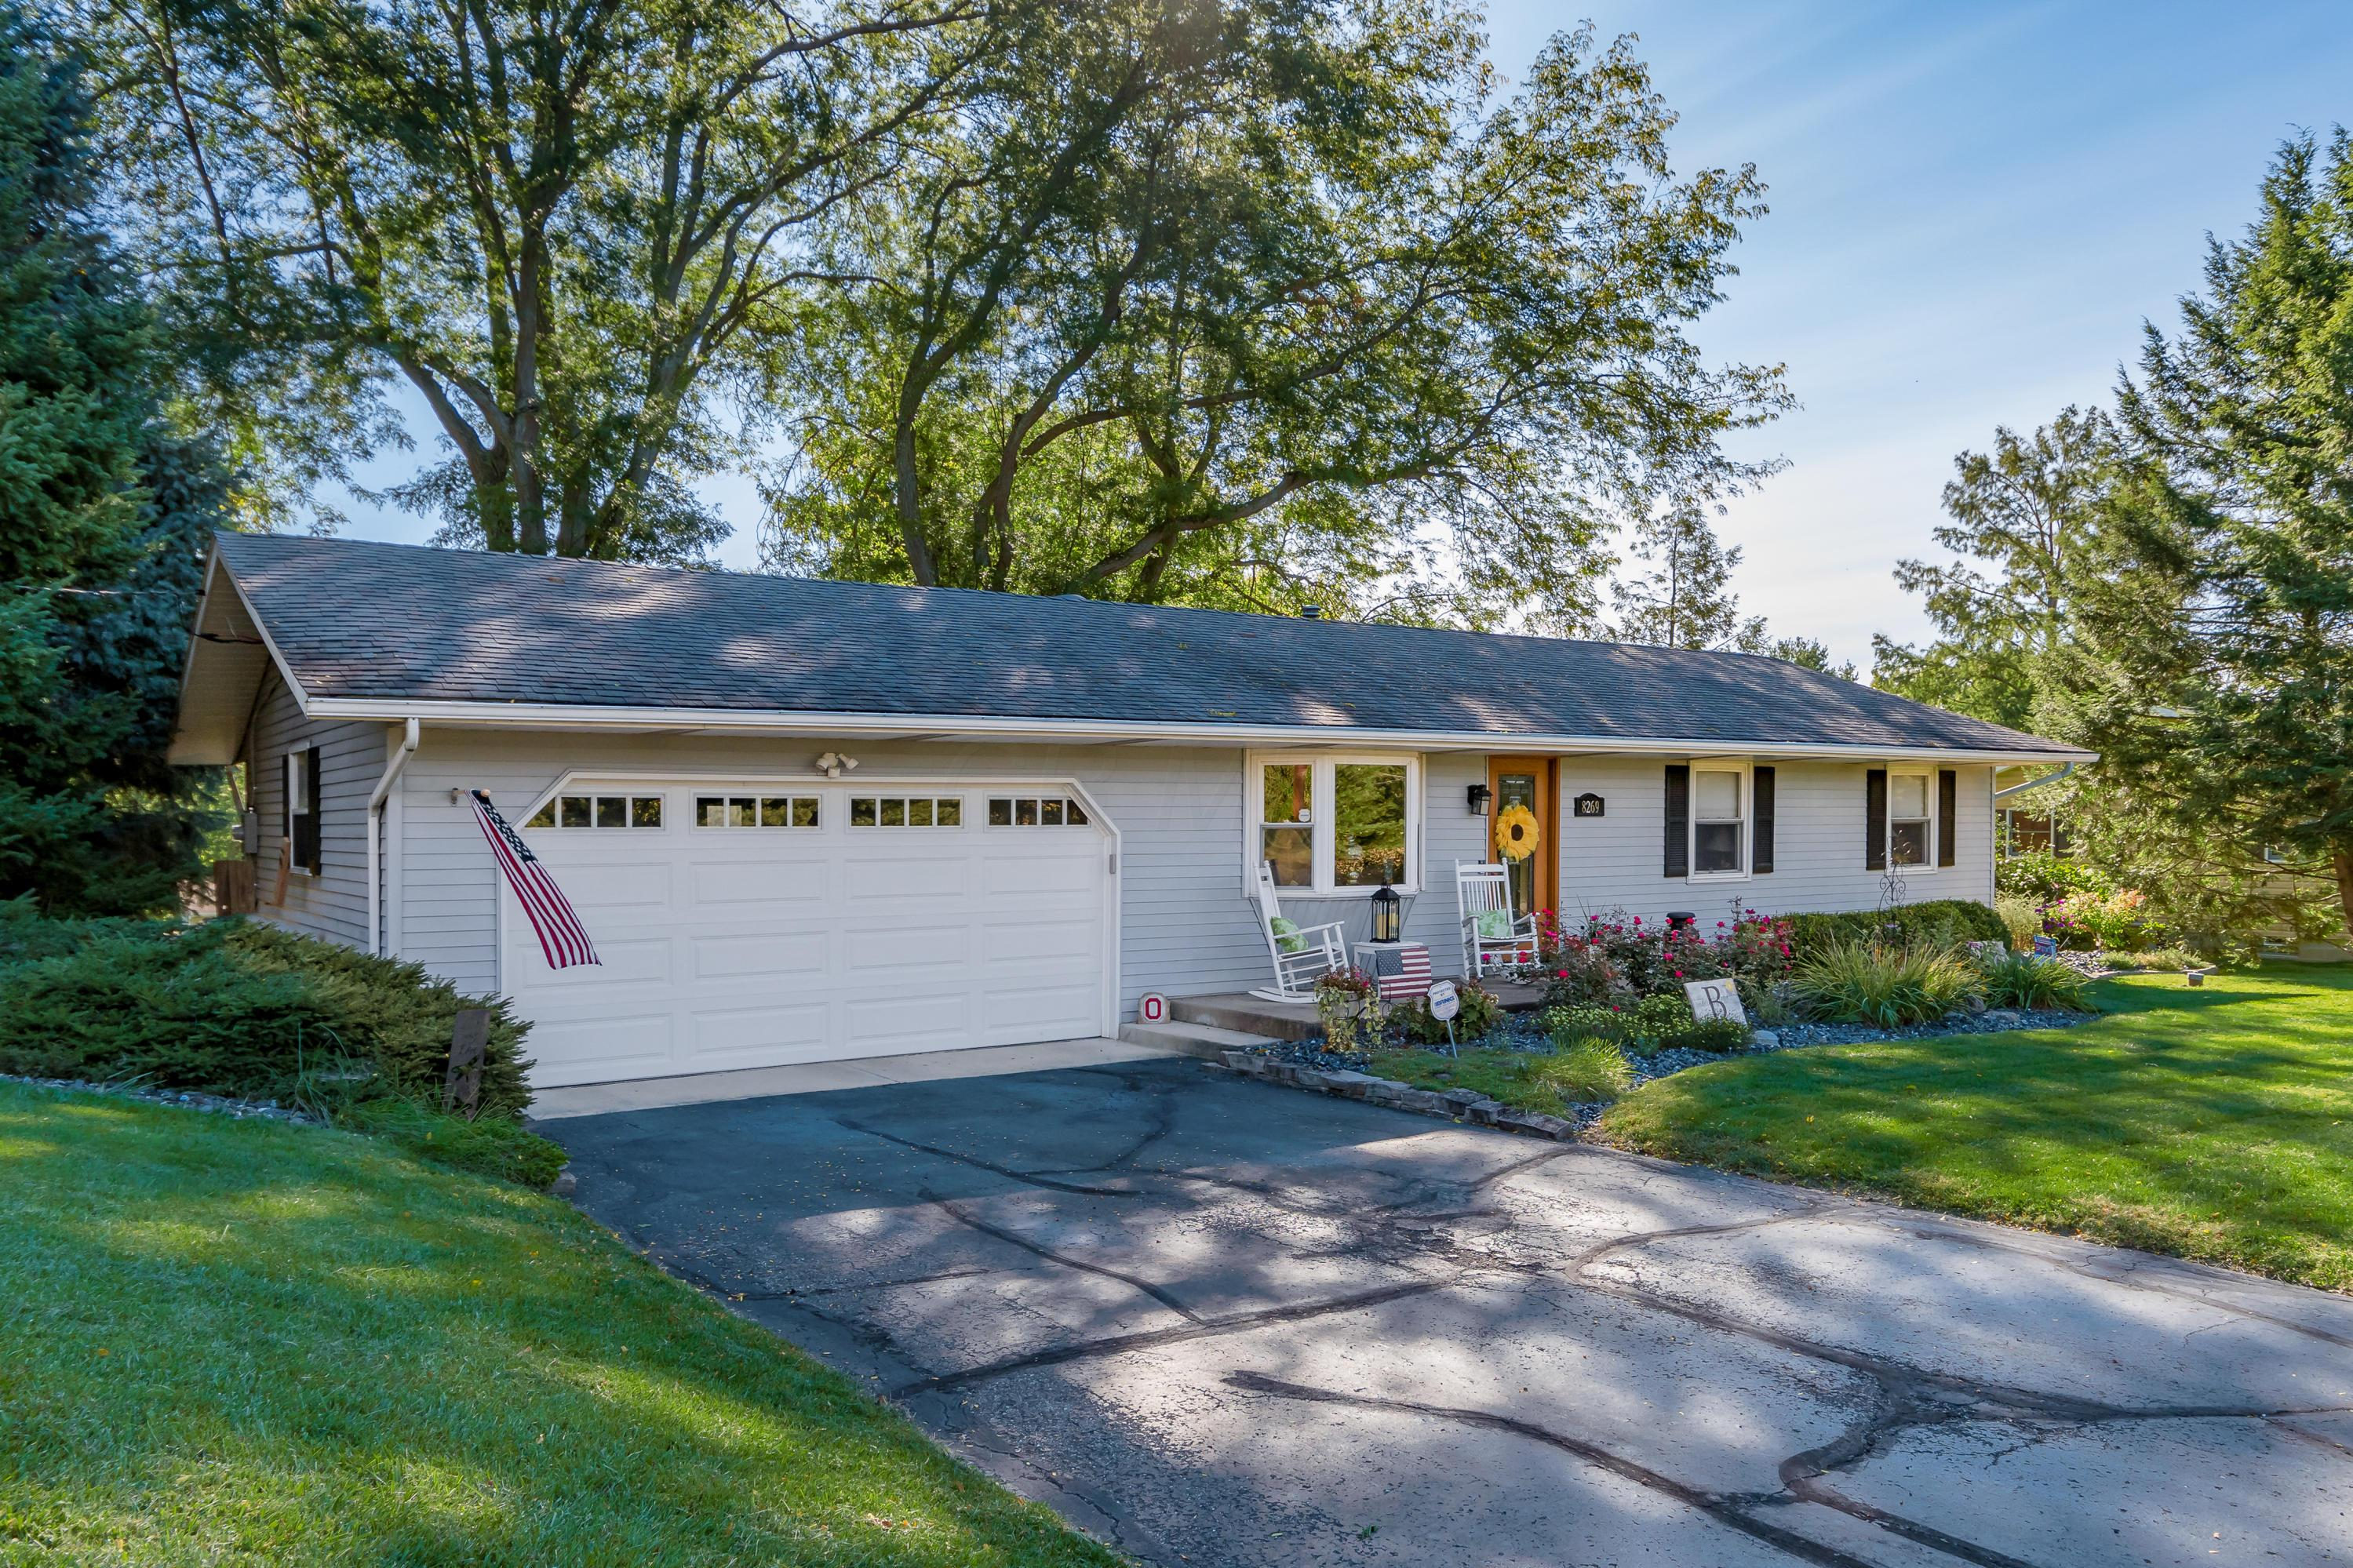 8269 Somerset Road, Thornville, Ohio 43076, 2 Bedrooms Bedrooms, ,1 BathroomBathrooms,Residential,For Sale,Somerset,220040999